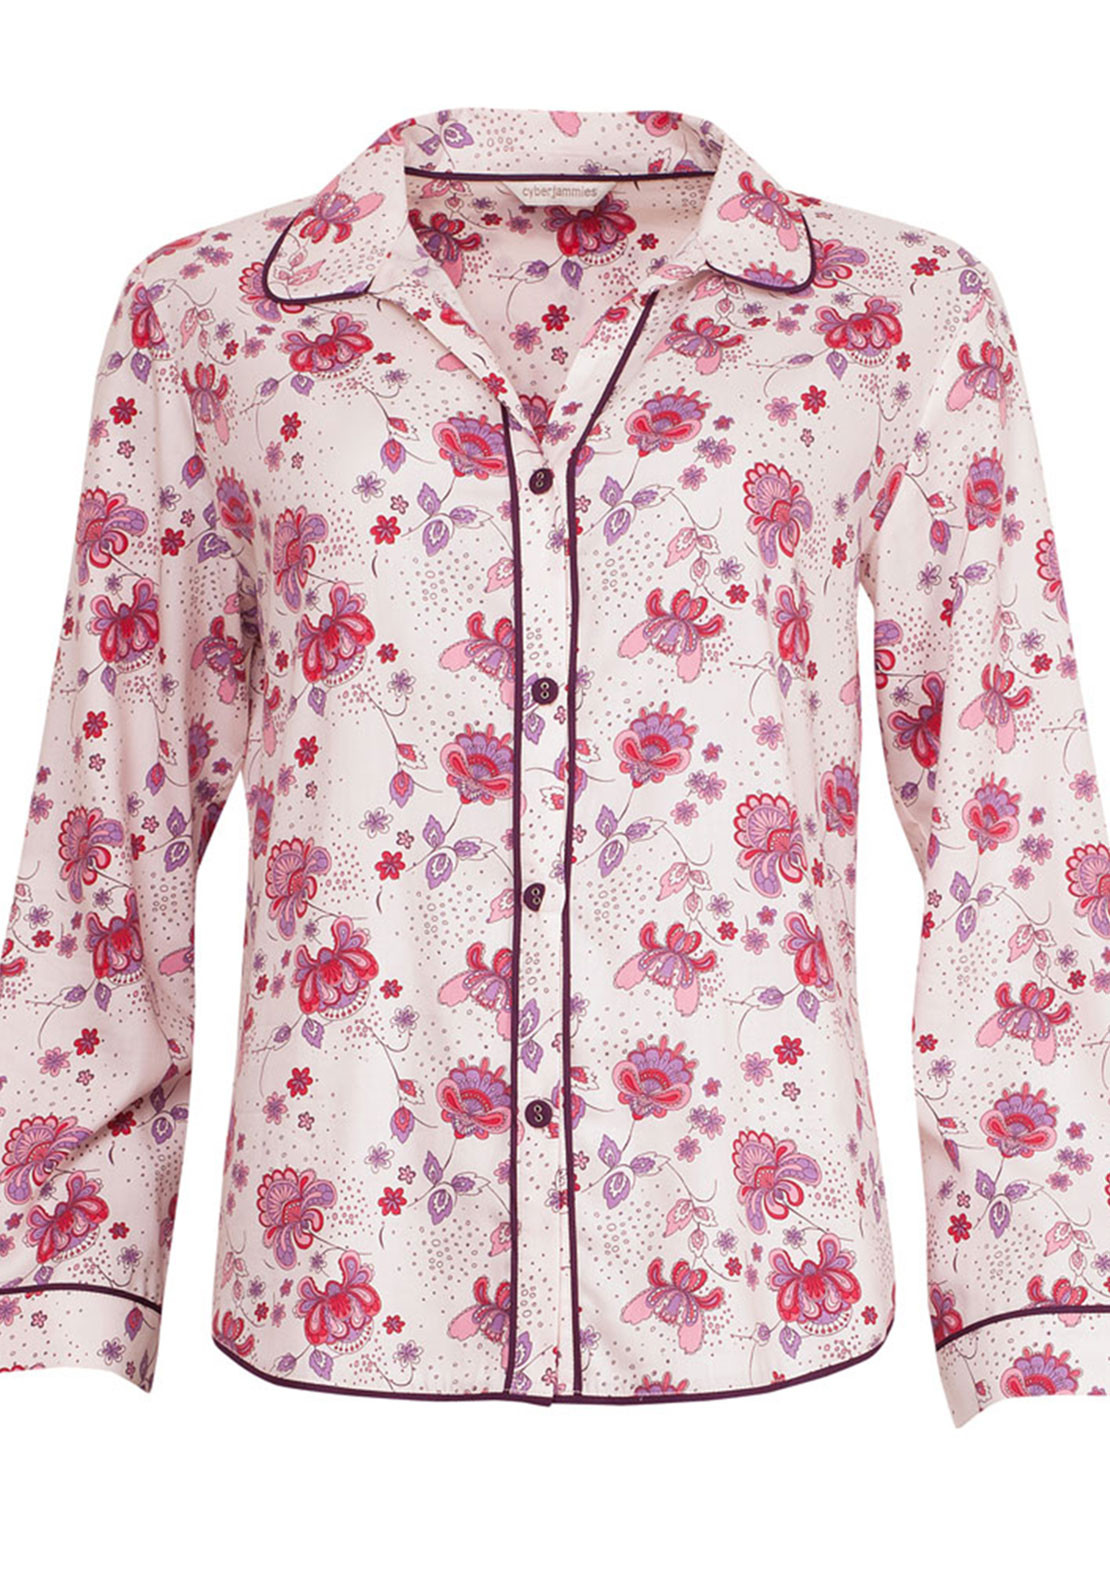 Cyberjammies Purple Haze Pyjama Top, Cream